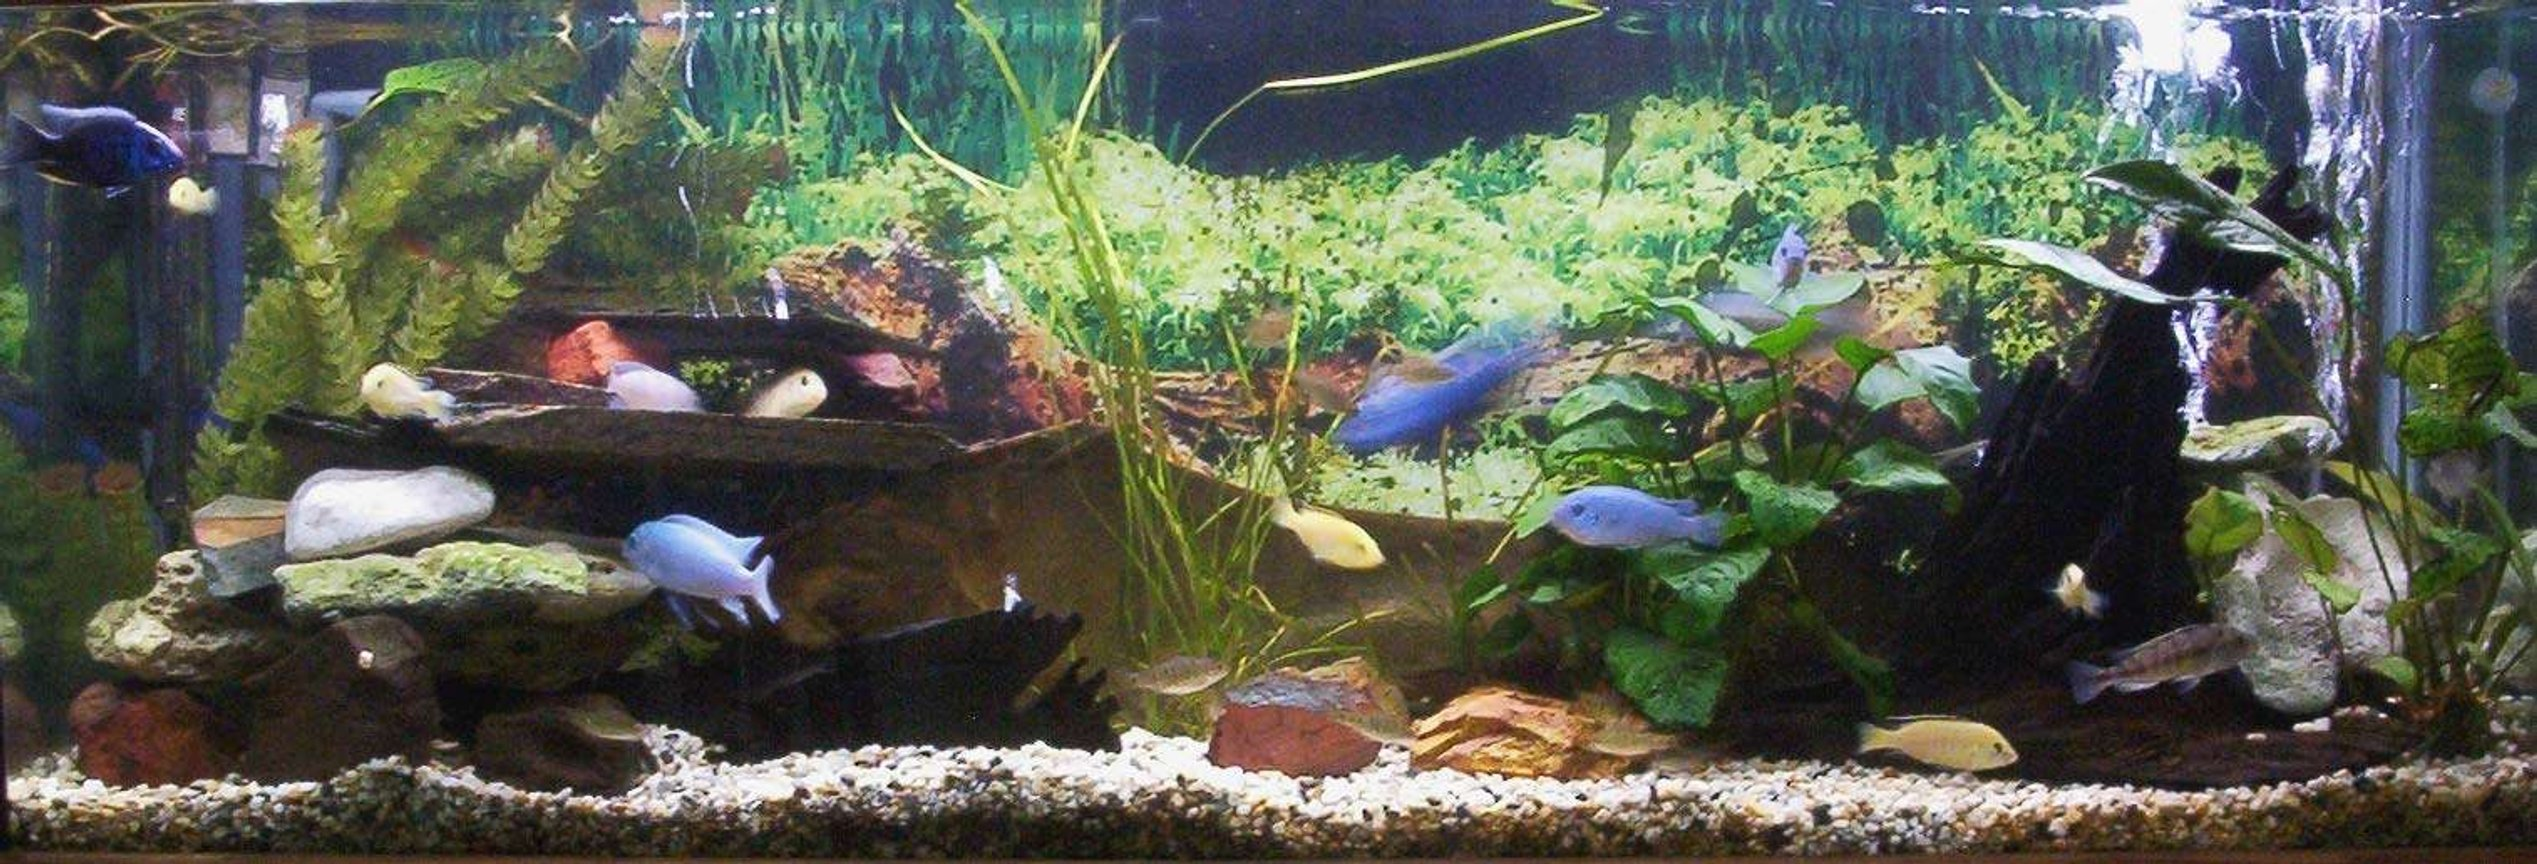 planted tank (mostly live plants and fish) - 4ft cichlid tank. Electric yellows. Electric blues. Psuedotropeus Colainos. Lombardoi. Phytophagus. Synodontis Multipuncatis. Ancistrus dolichopterus. Barbs. PLANTS: Val Anubias bateri Anubias hybrid